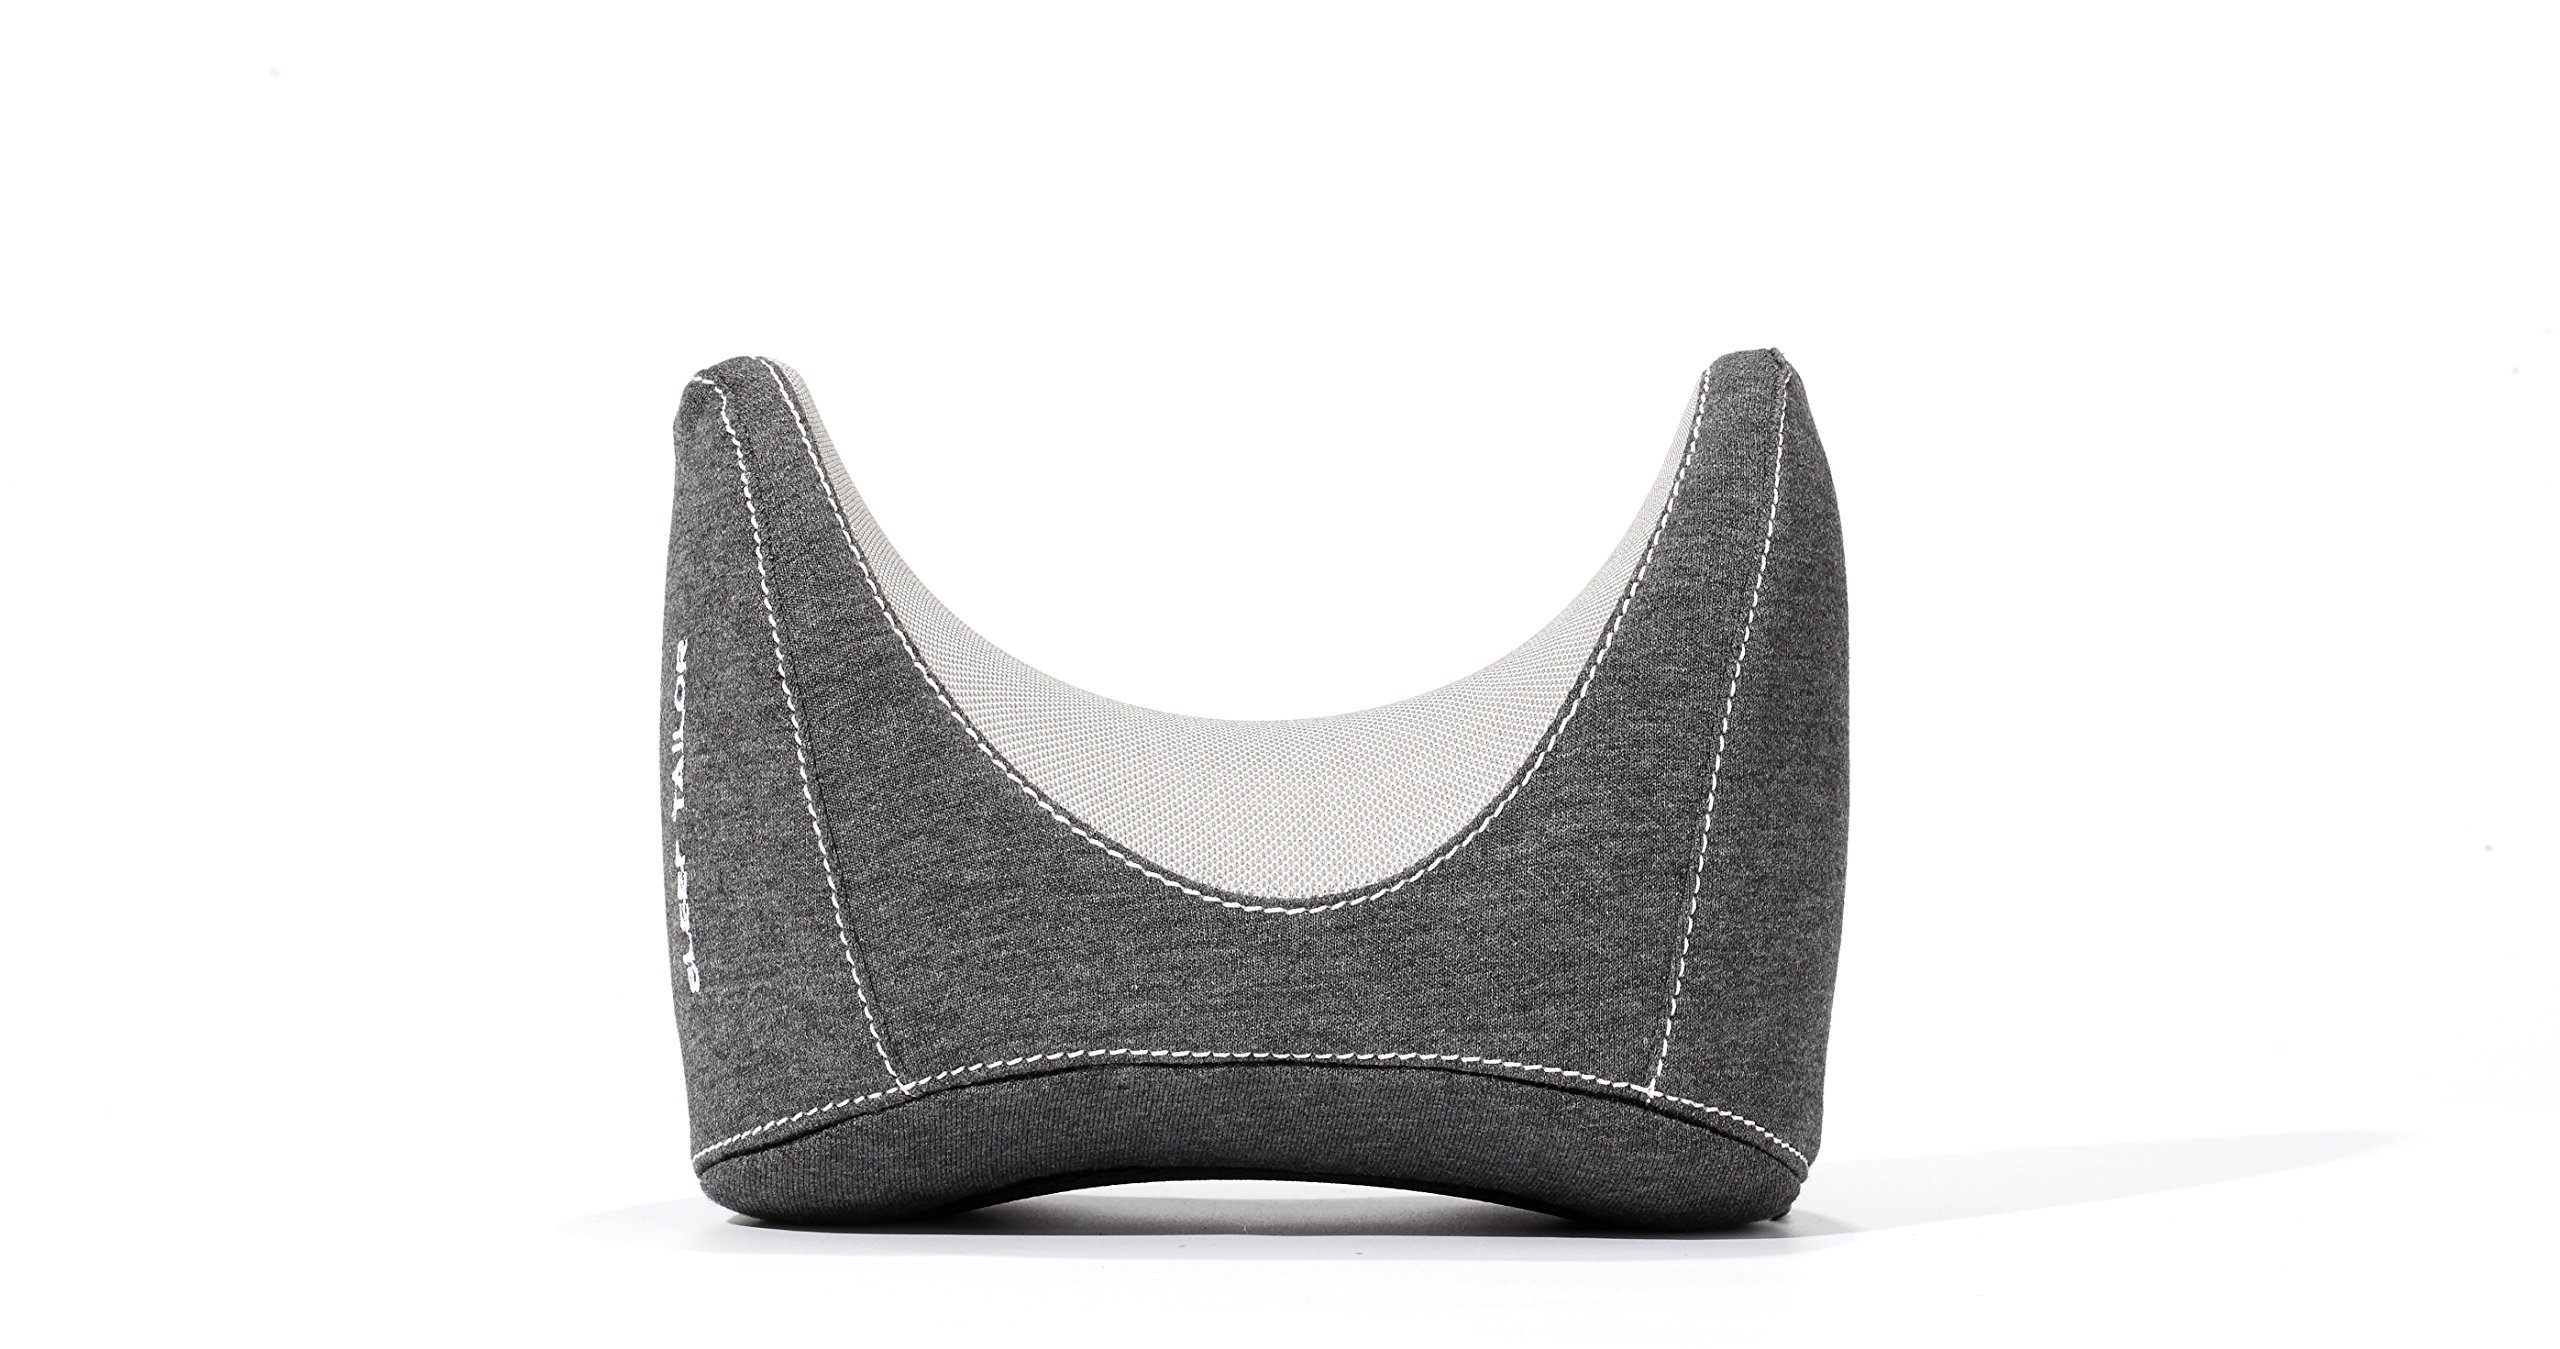 COMPACT LIGHTWEIGHT Travel Neck Pillow - Super Small and Lightweight Breathable Memory Foam Pillow for Head Neck Chin Shoulder Support Machine Washable Cover for Rest on Long Trip for All Ages GREY